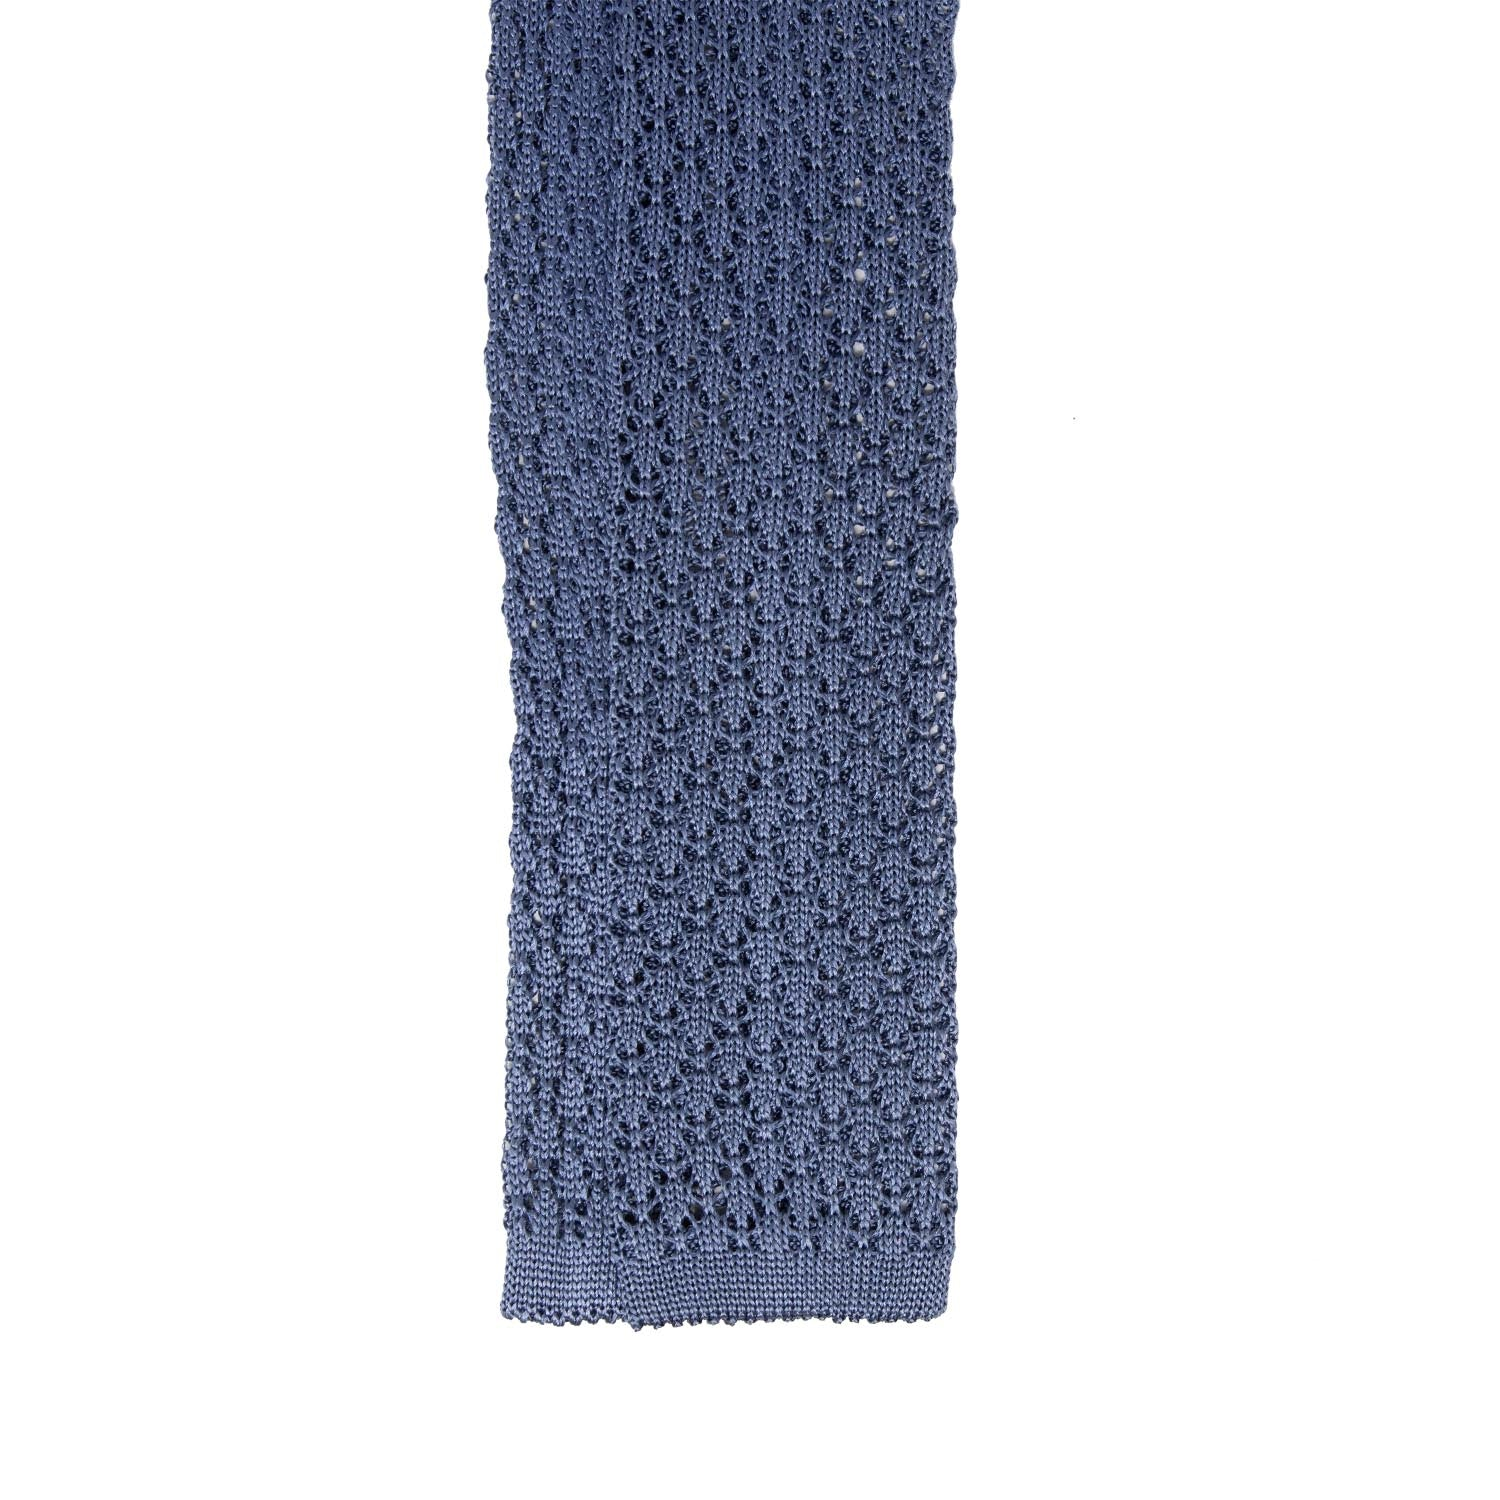 serafinesilk - Dust blue silk knitted tie